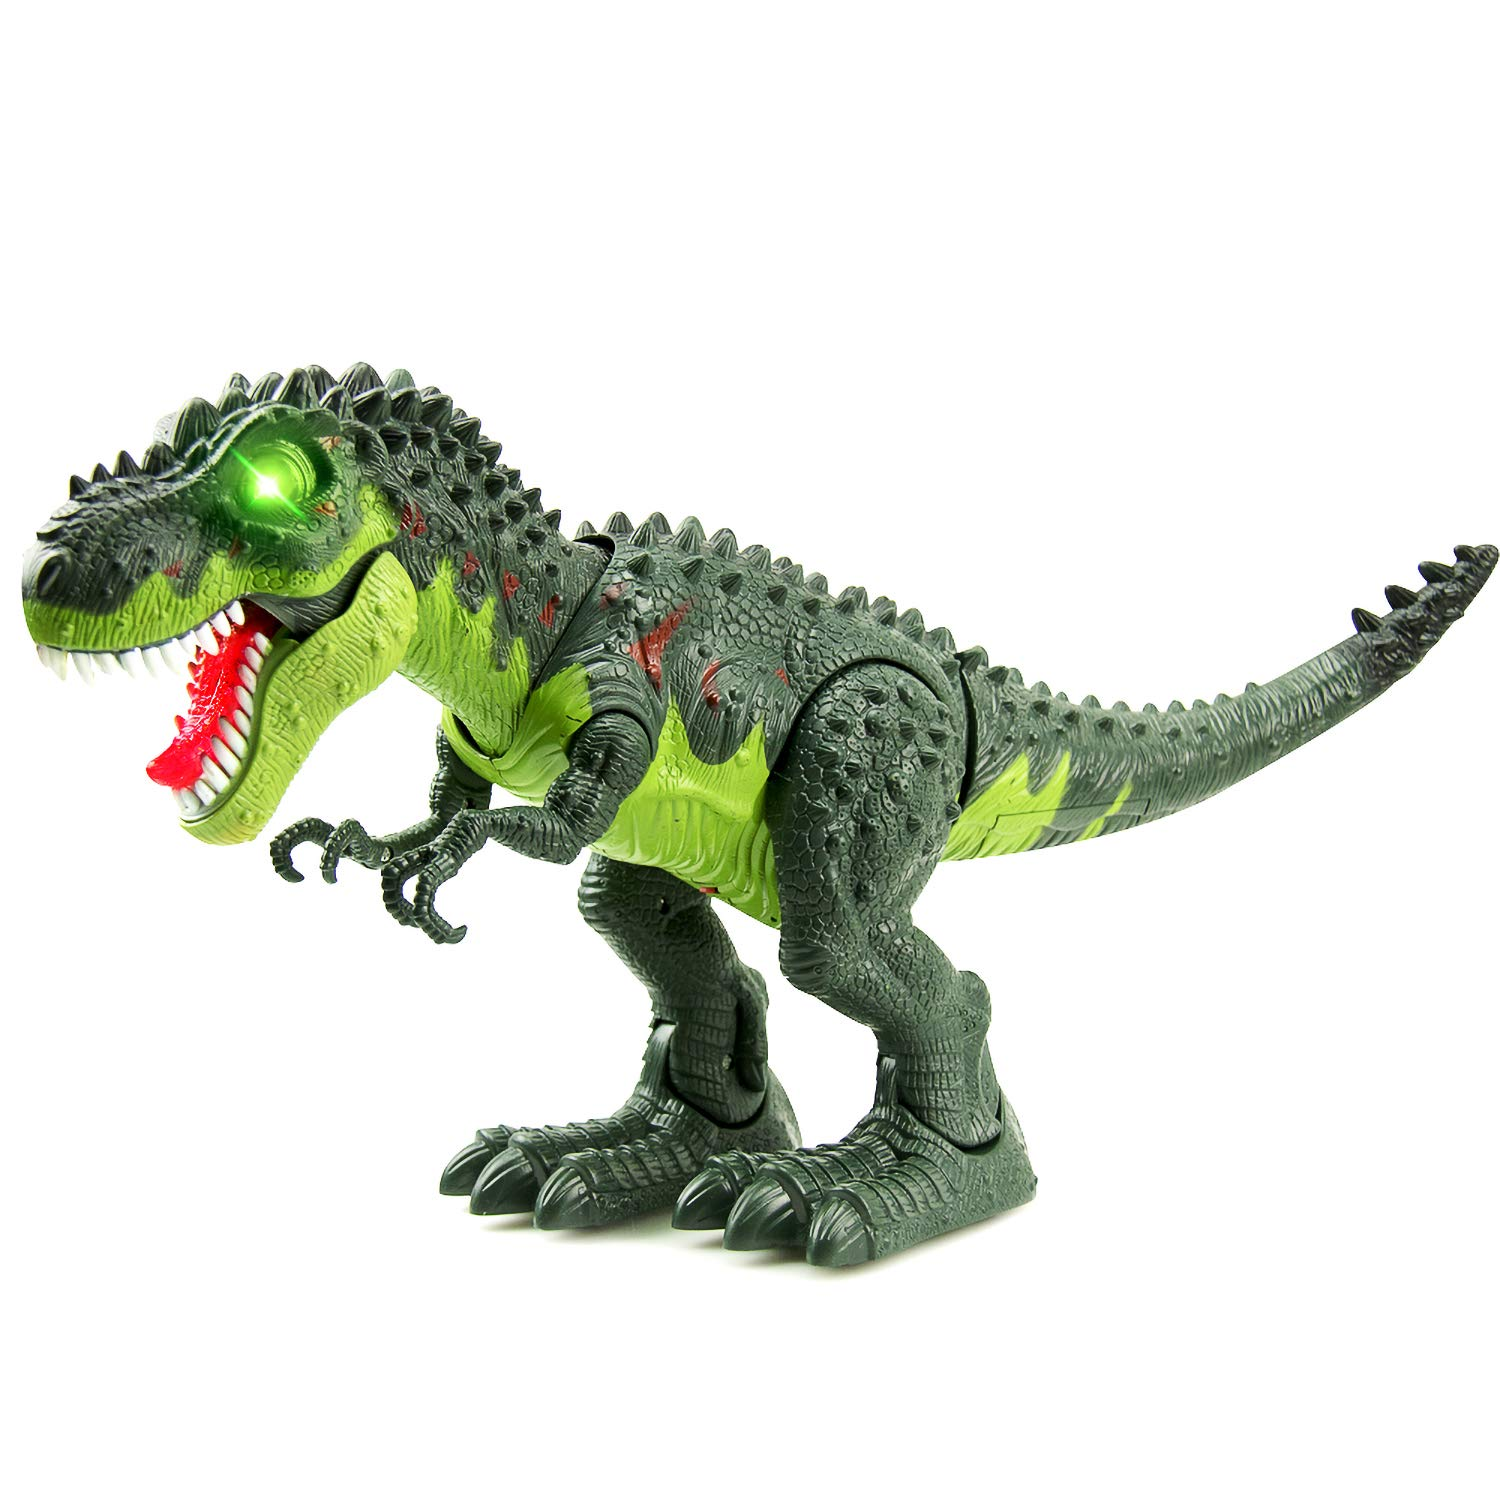 WonderPlay Walking Dinosaur T-Rex Toy Figure with Lights and Sounds Realistic Tyrannosaurus Dinosaur Toys for Kids Battery Operated Green by WonderPlay (Image #1)